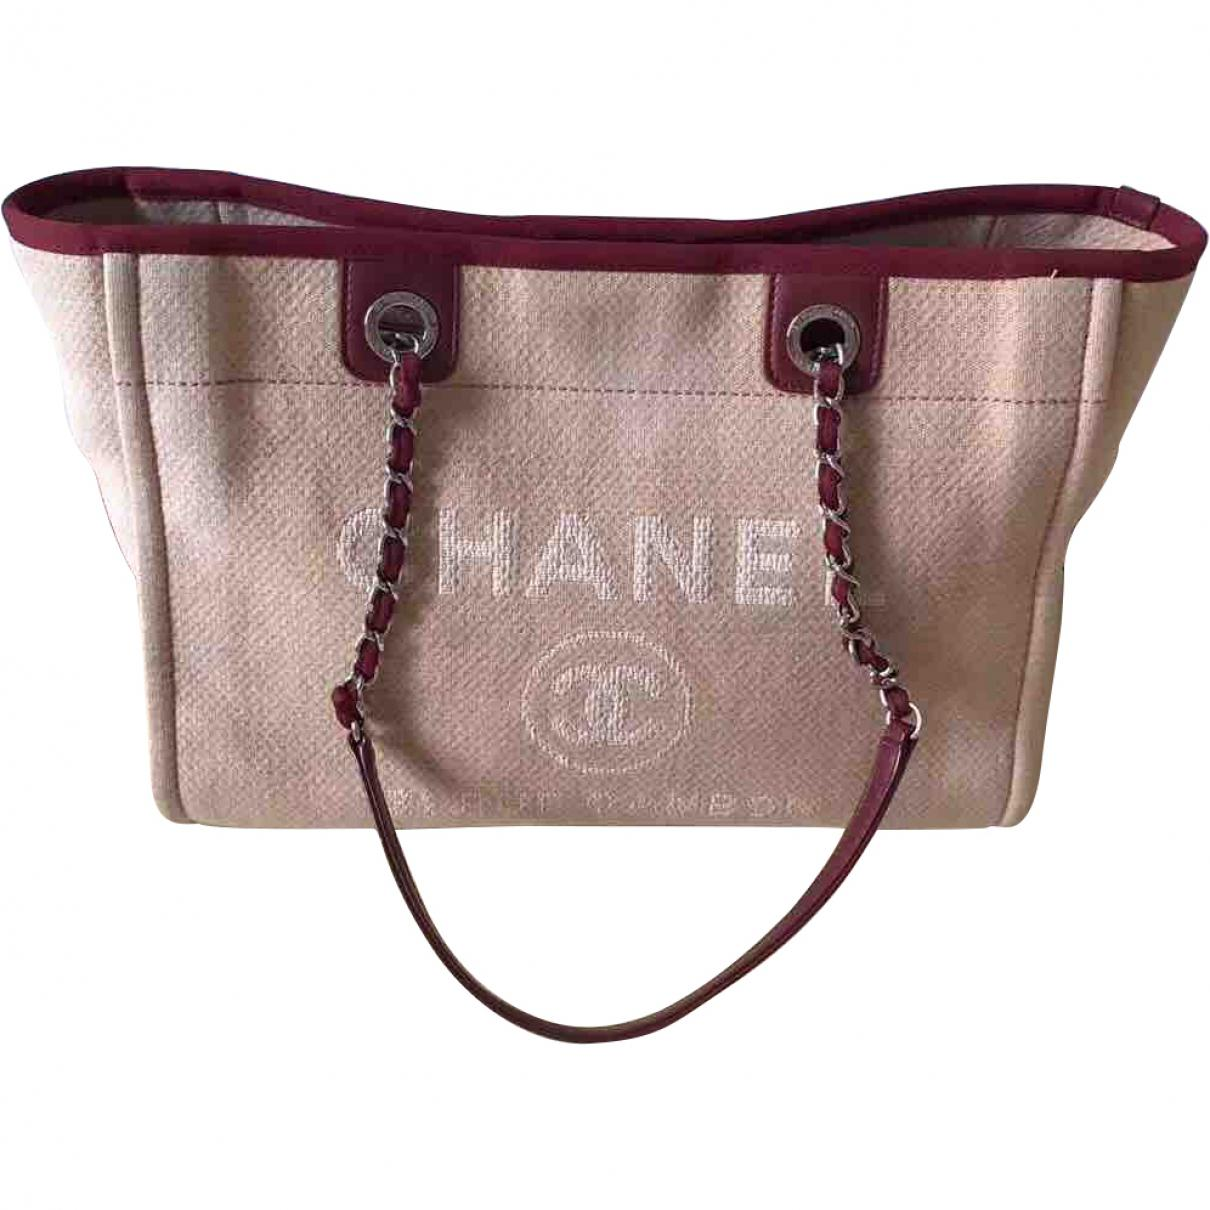 46b8b9c7171c Chanel Pre-owned Deauville Tote in Red - Lyst